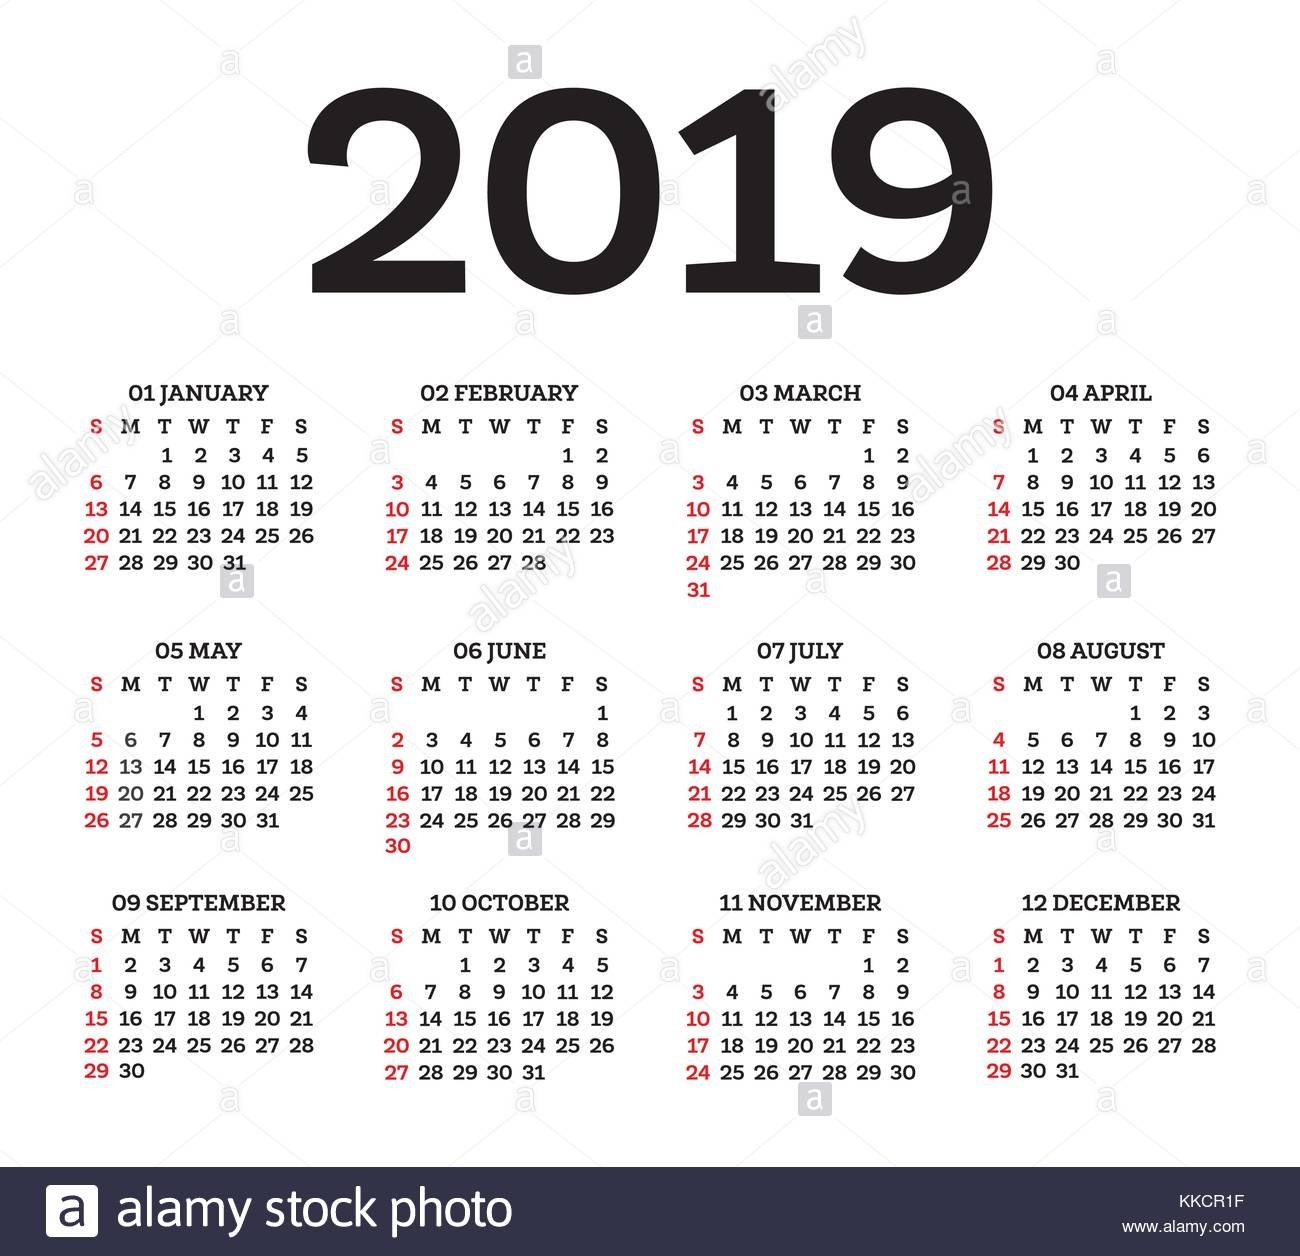 Calendar 2019 Isolated On White Background. Week Starts From Sunday Y 2019 Calendar